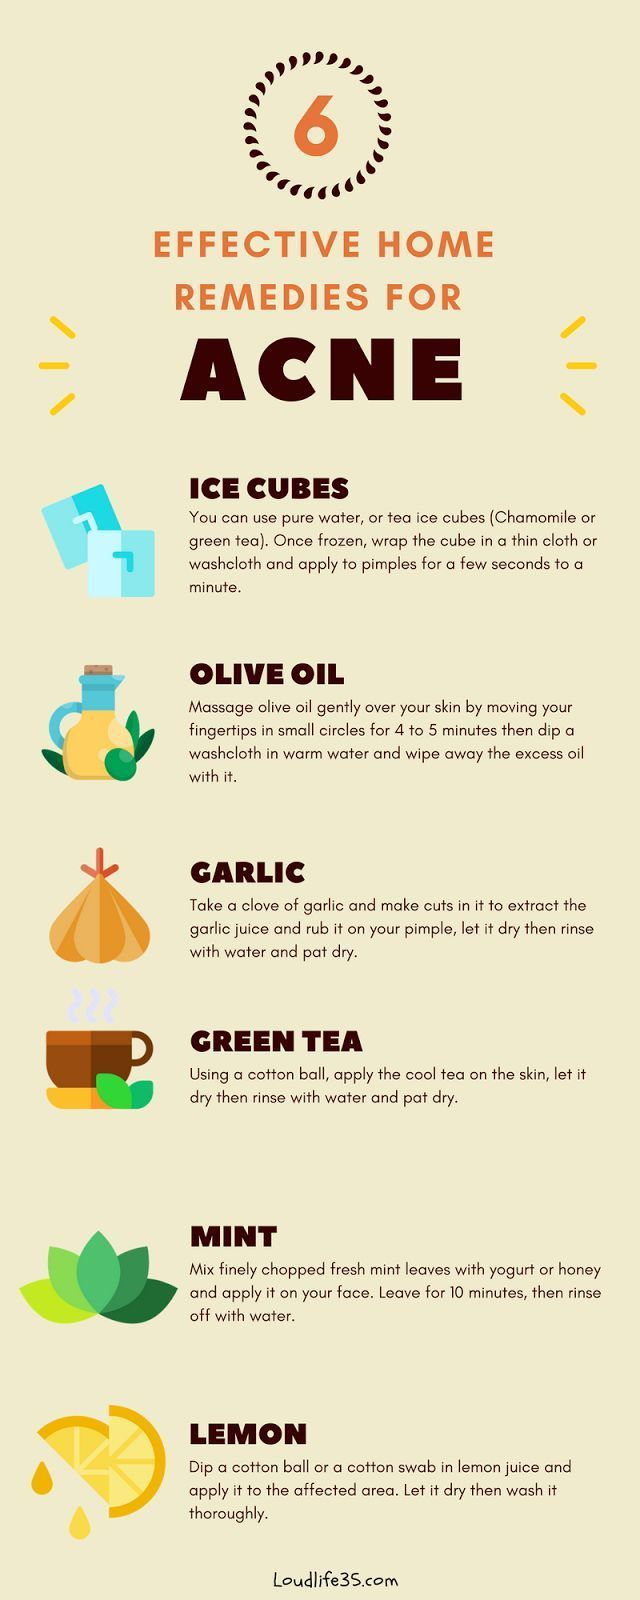 6 Effective Home Remedies for Acne You Need to Try - #acne #Effective #Home #Remedies #naturalcures